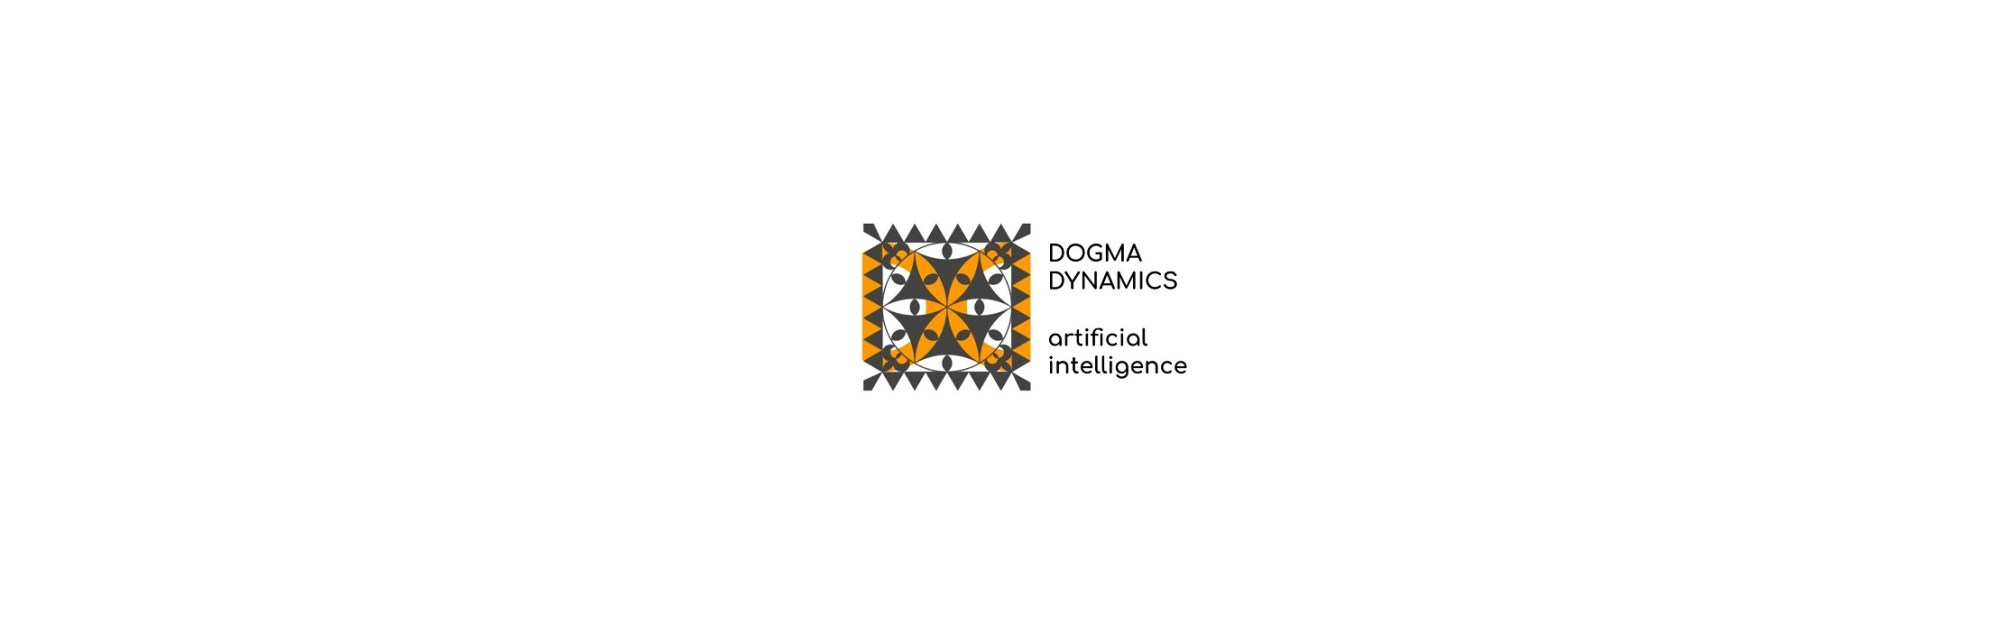 Dogma Dynamics - Artificial Intelligence -cover